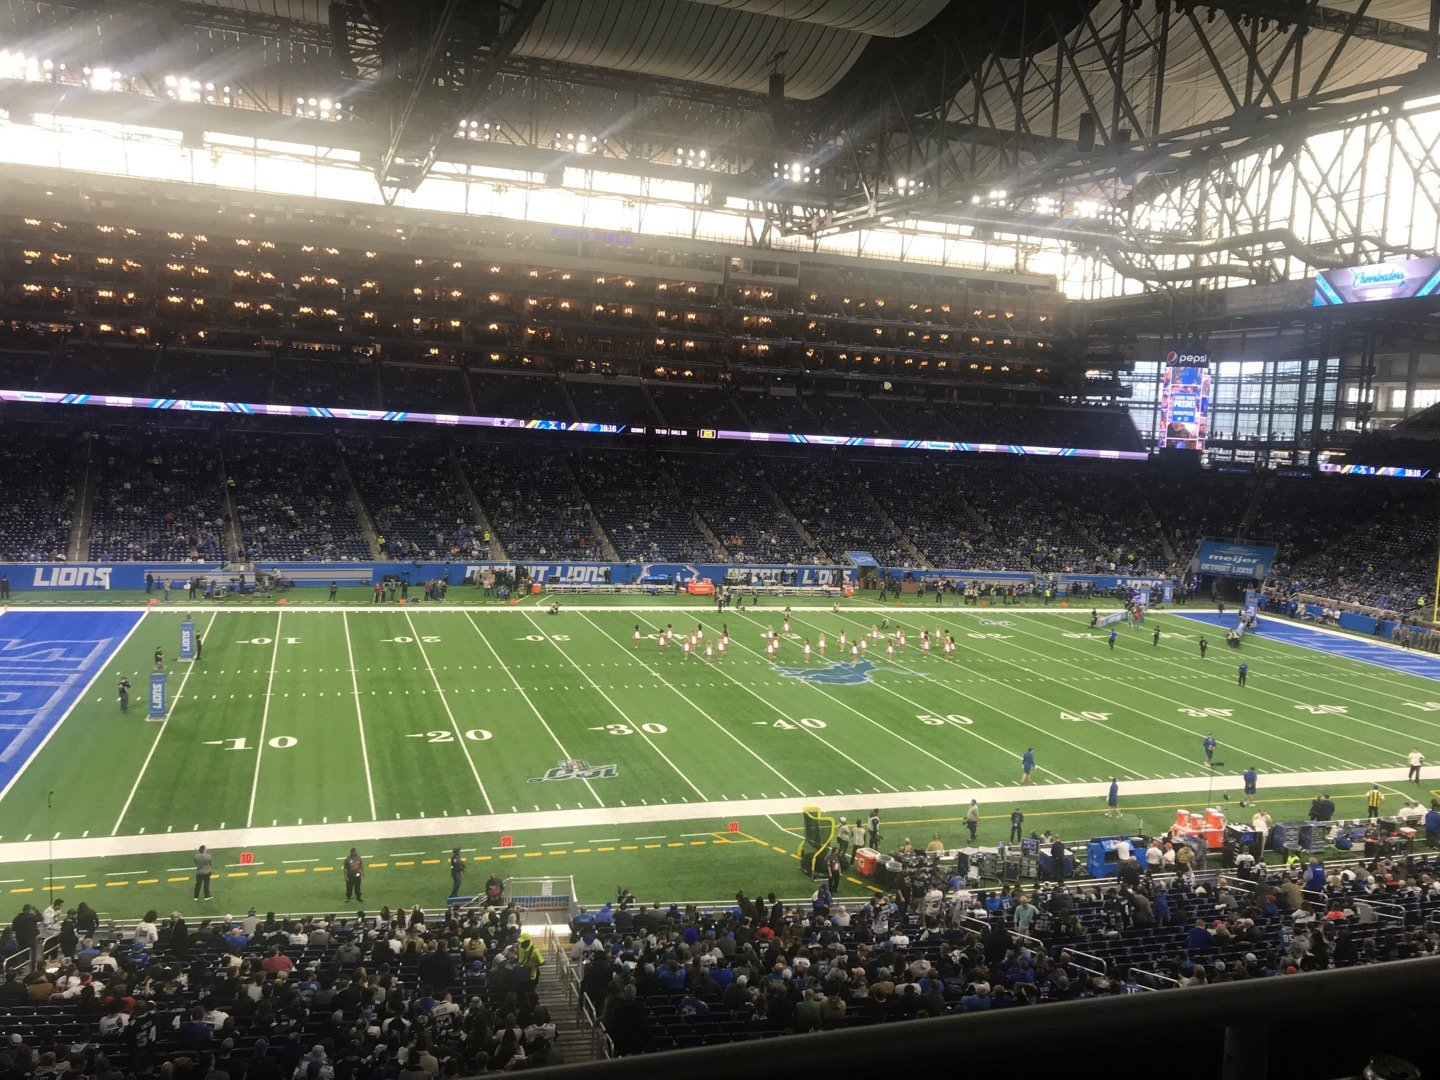 Ford Field Section 228 Row 2 Seat 5